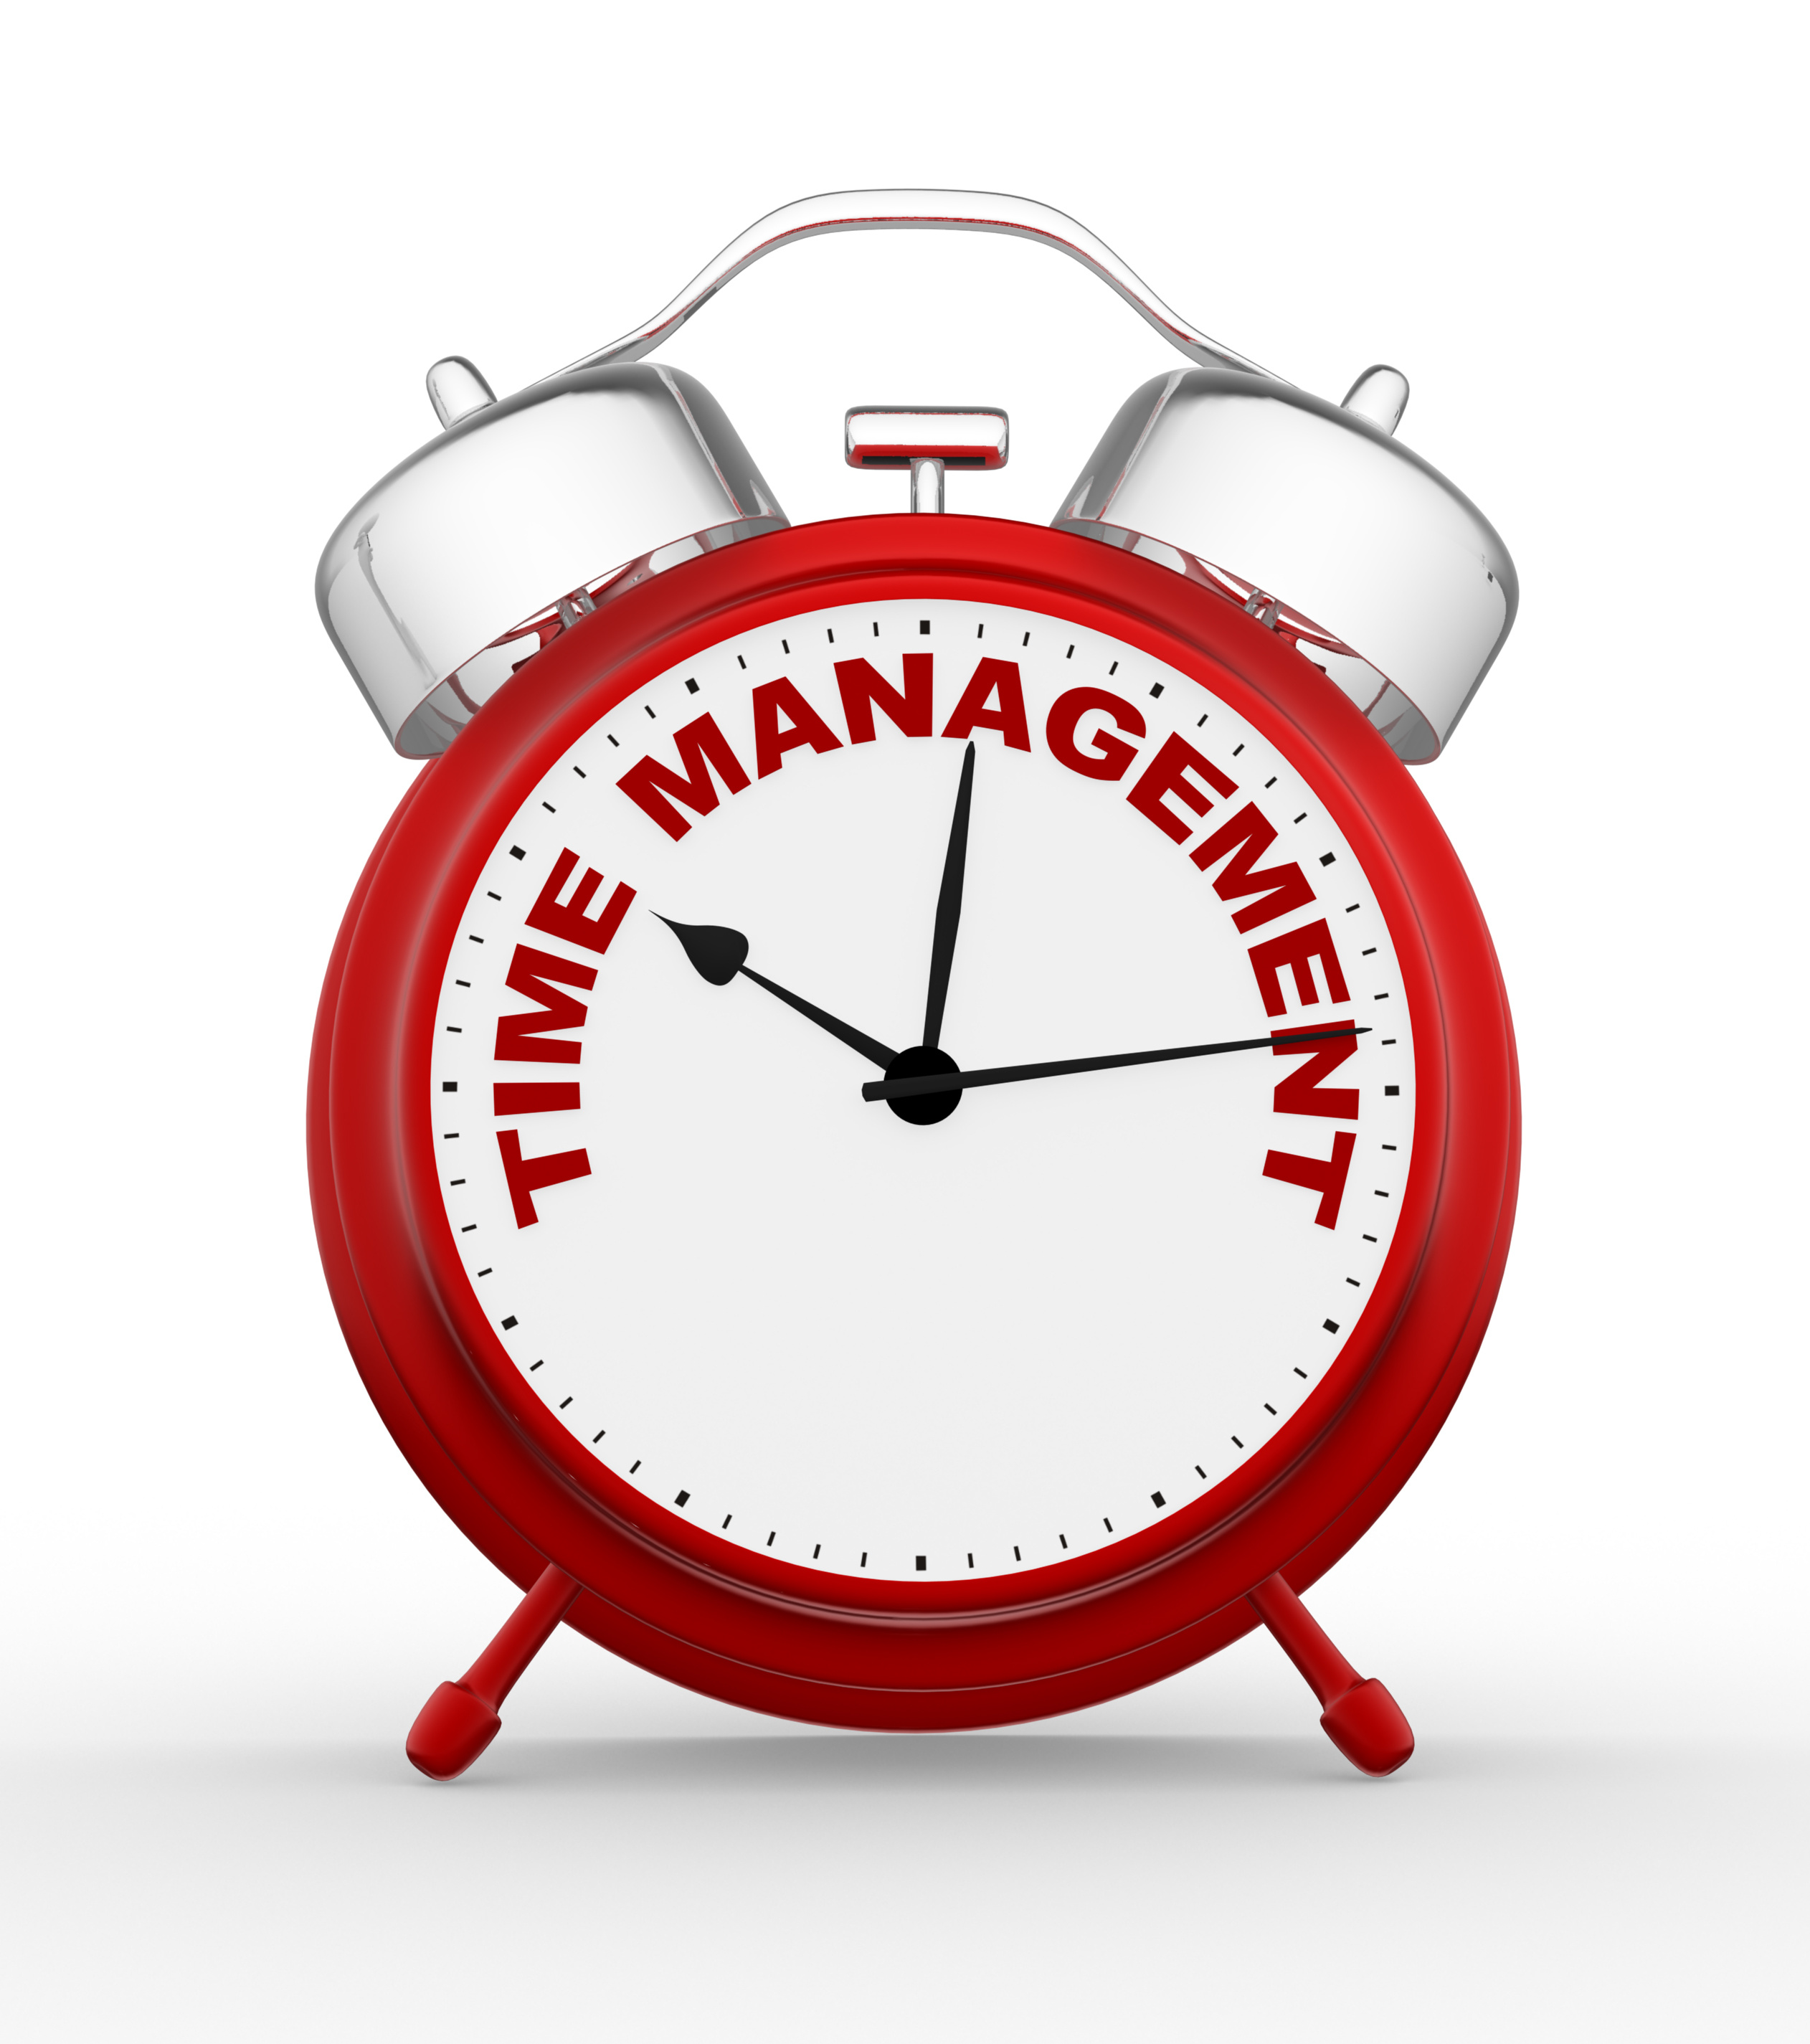 research strategy paper on time management Research strategy paper on time management selected problem my selected problem is time management.